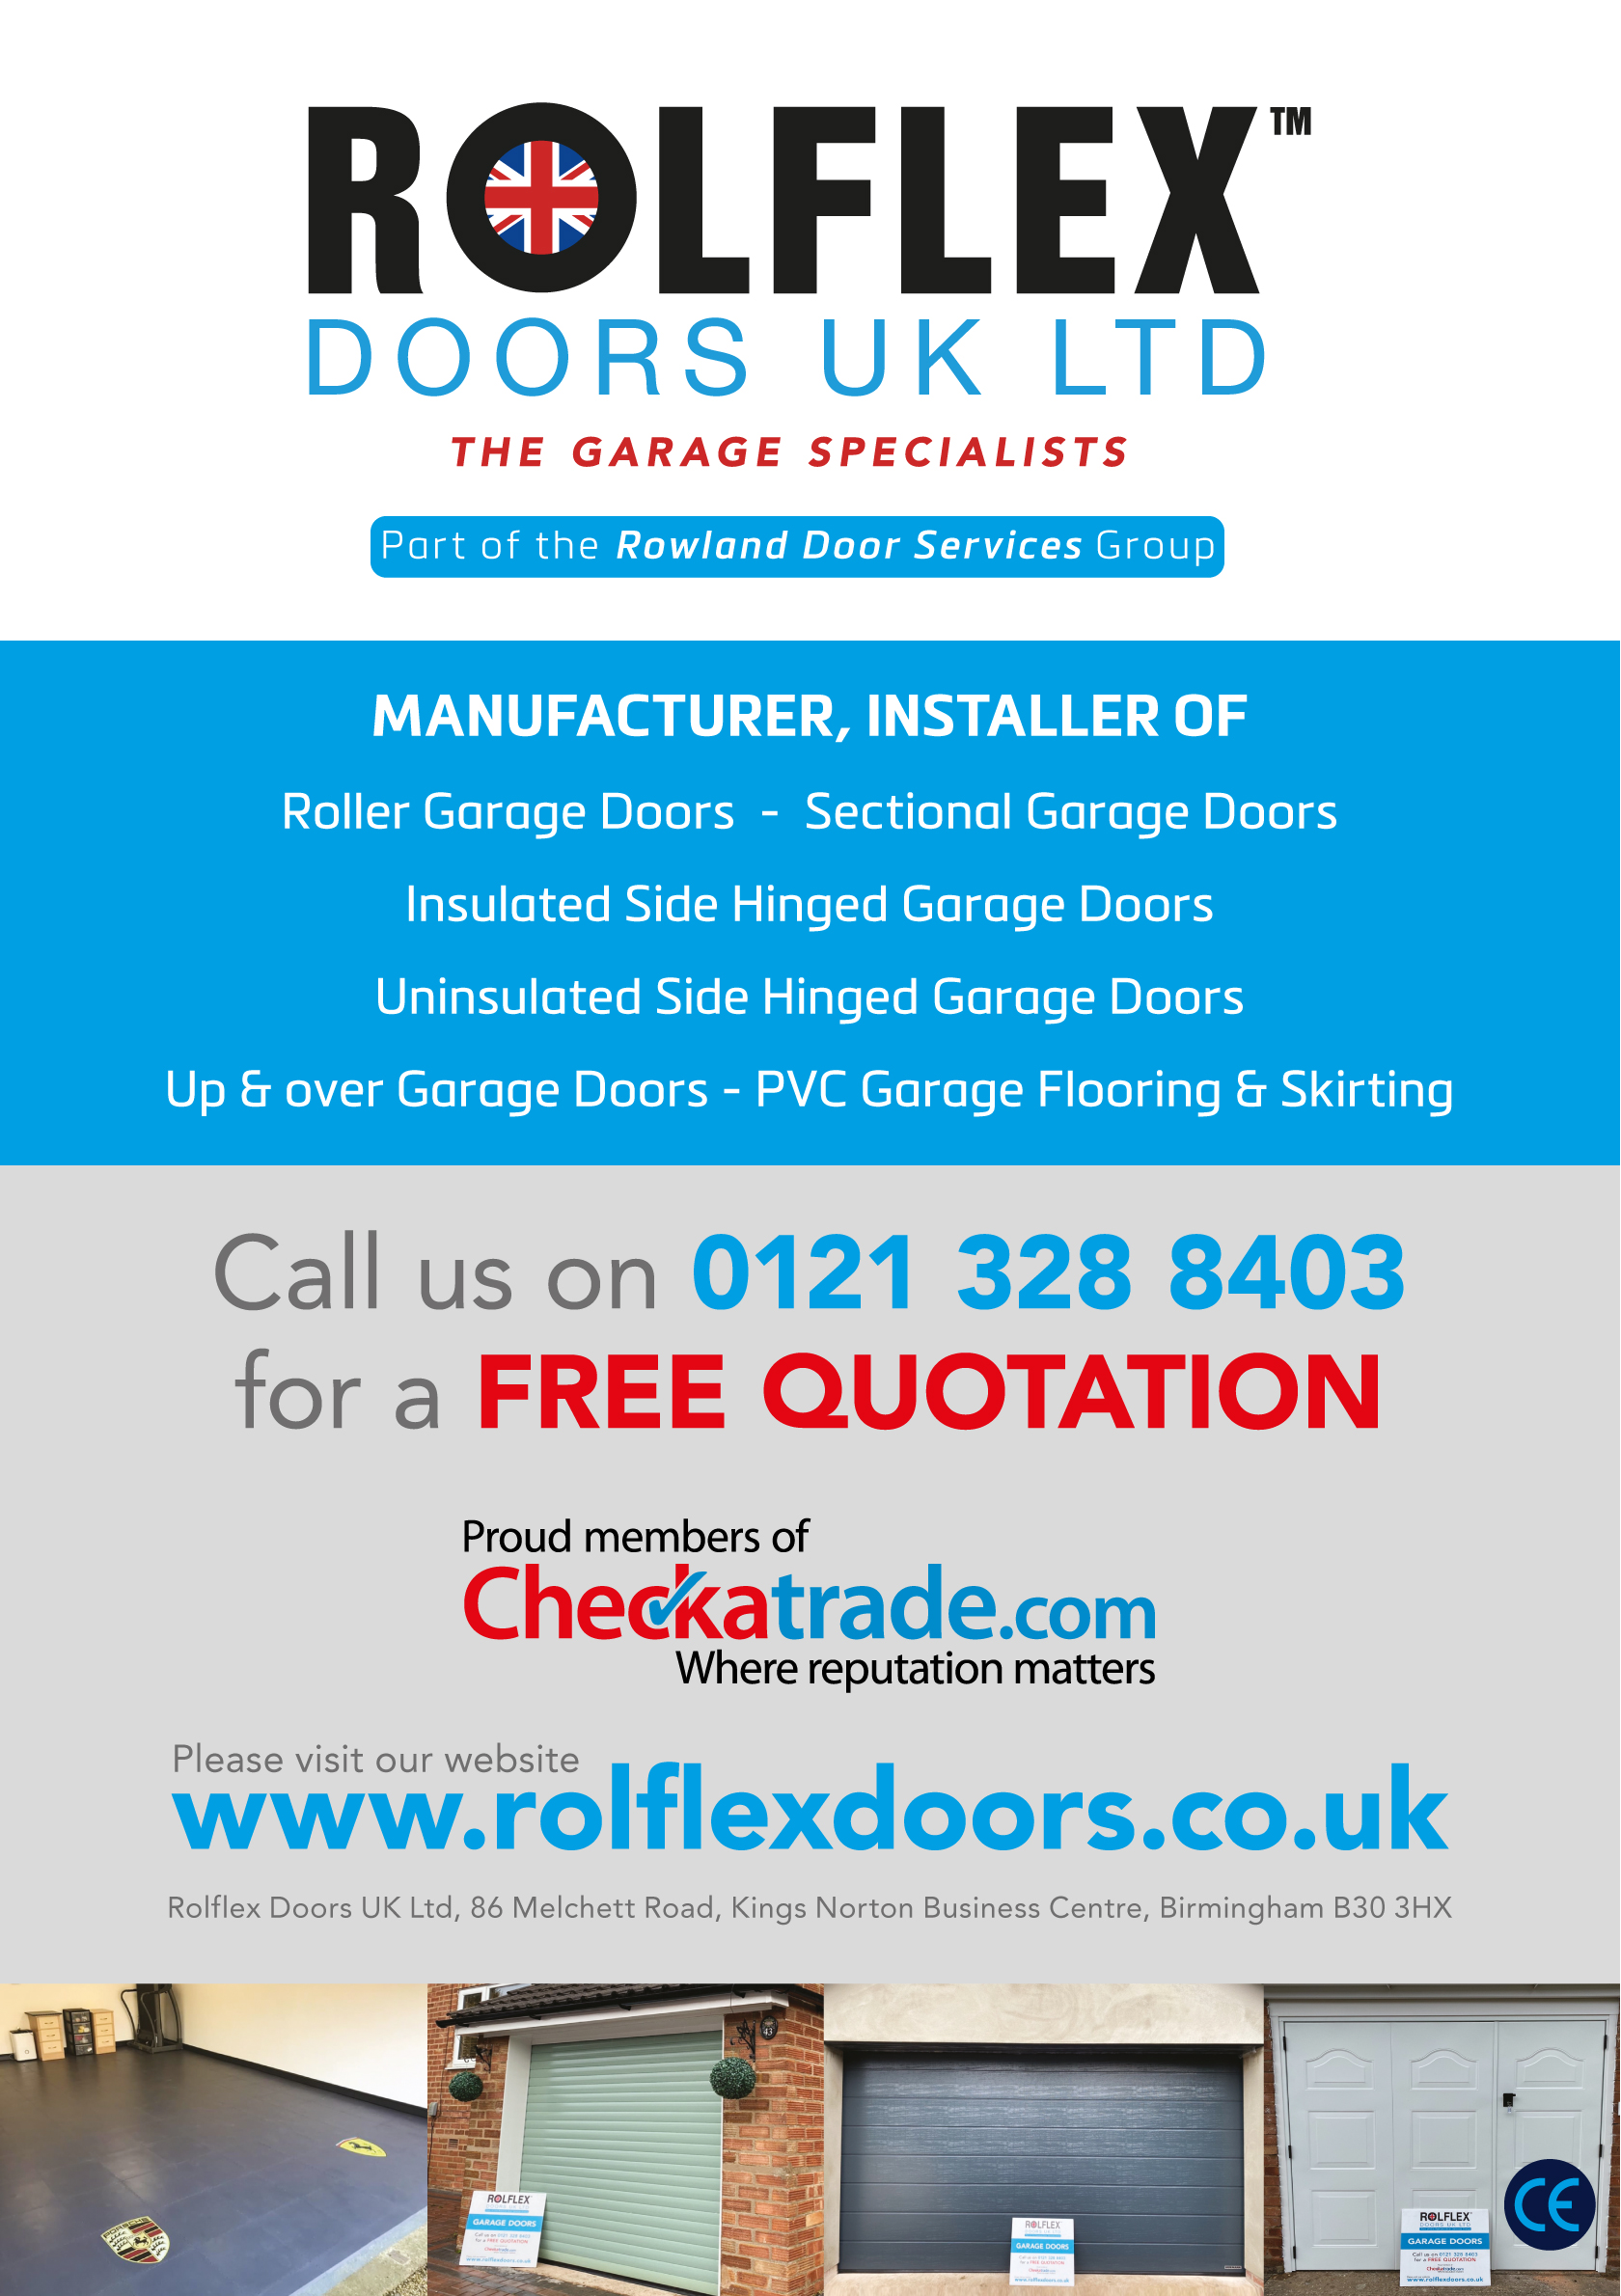 rolflex doors uk ltd